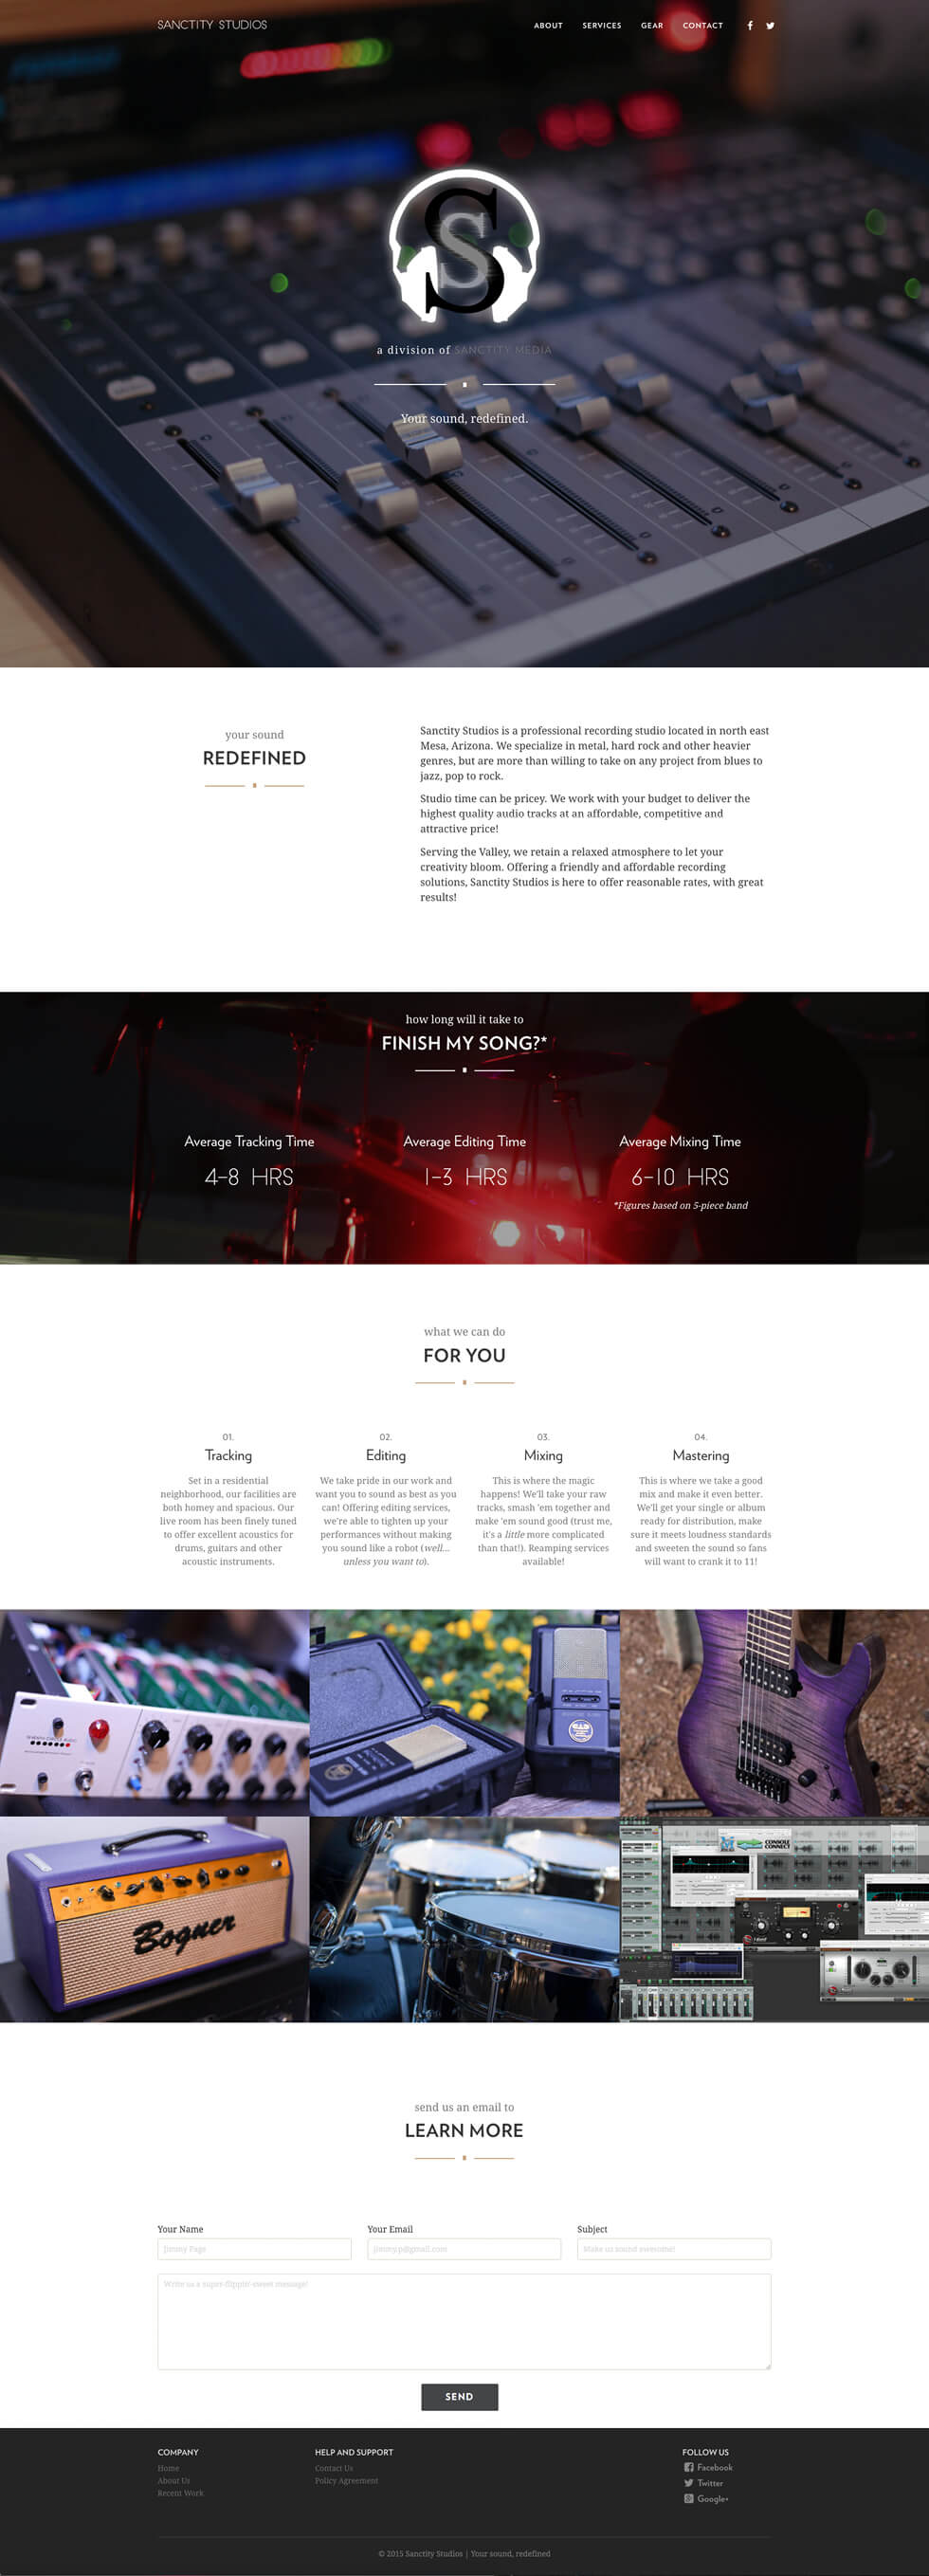 Website one-page redesign